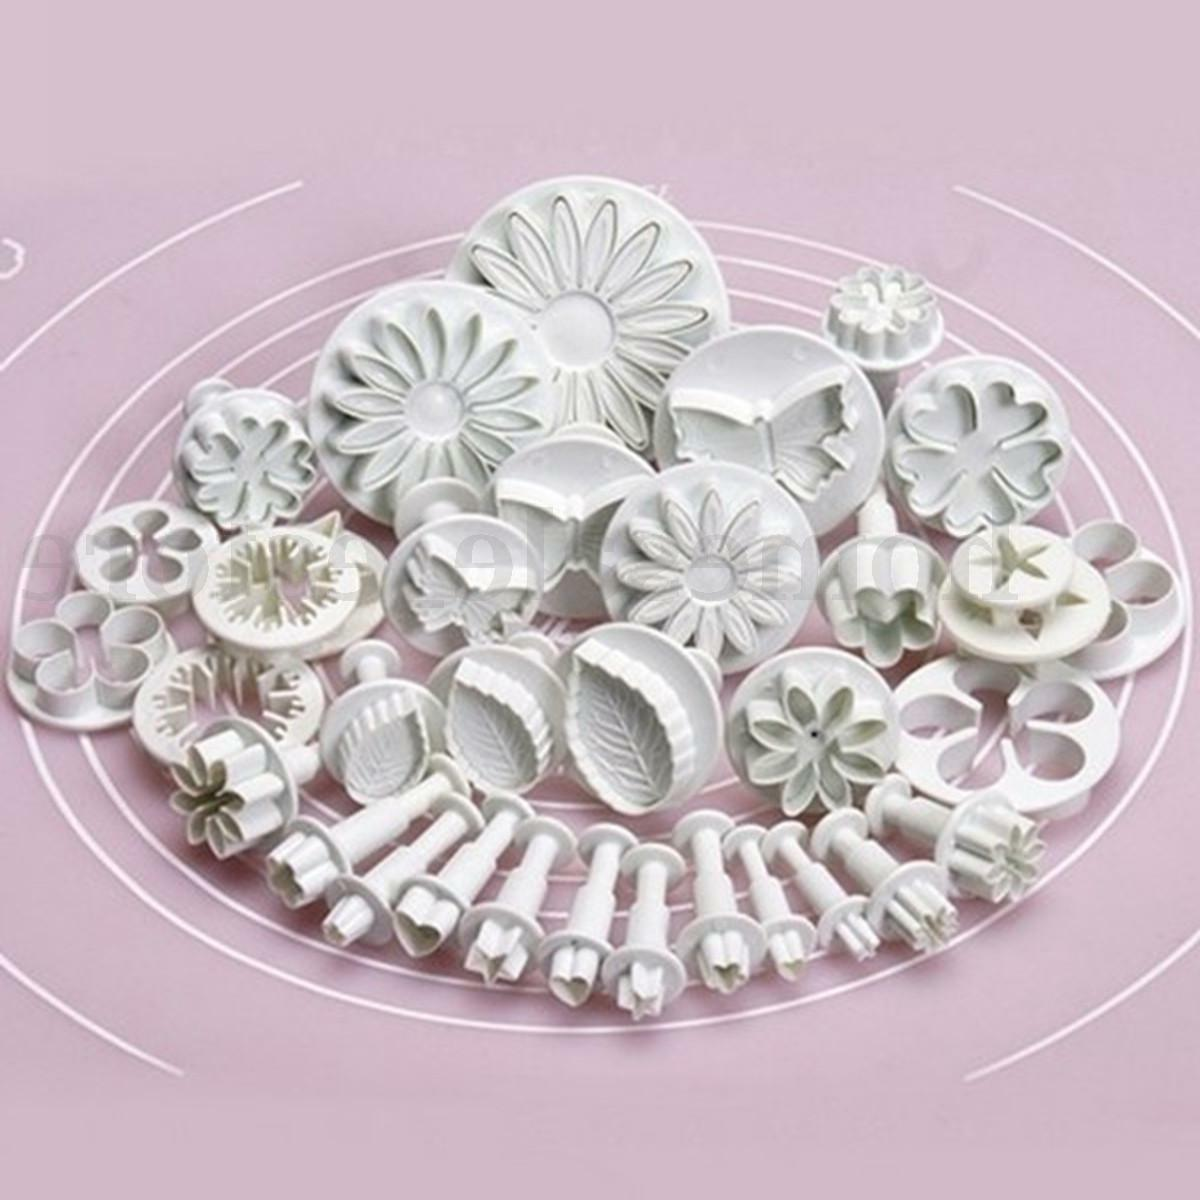 33pcs pastry cutters tools sugarcraft cake decorating